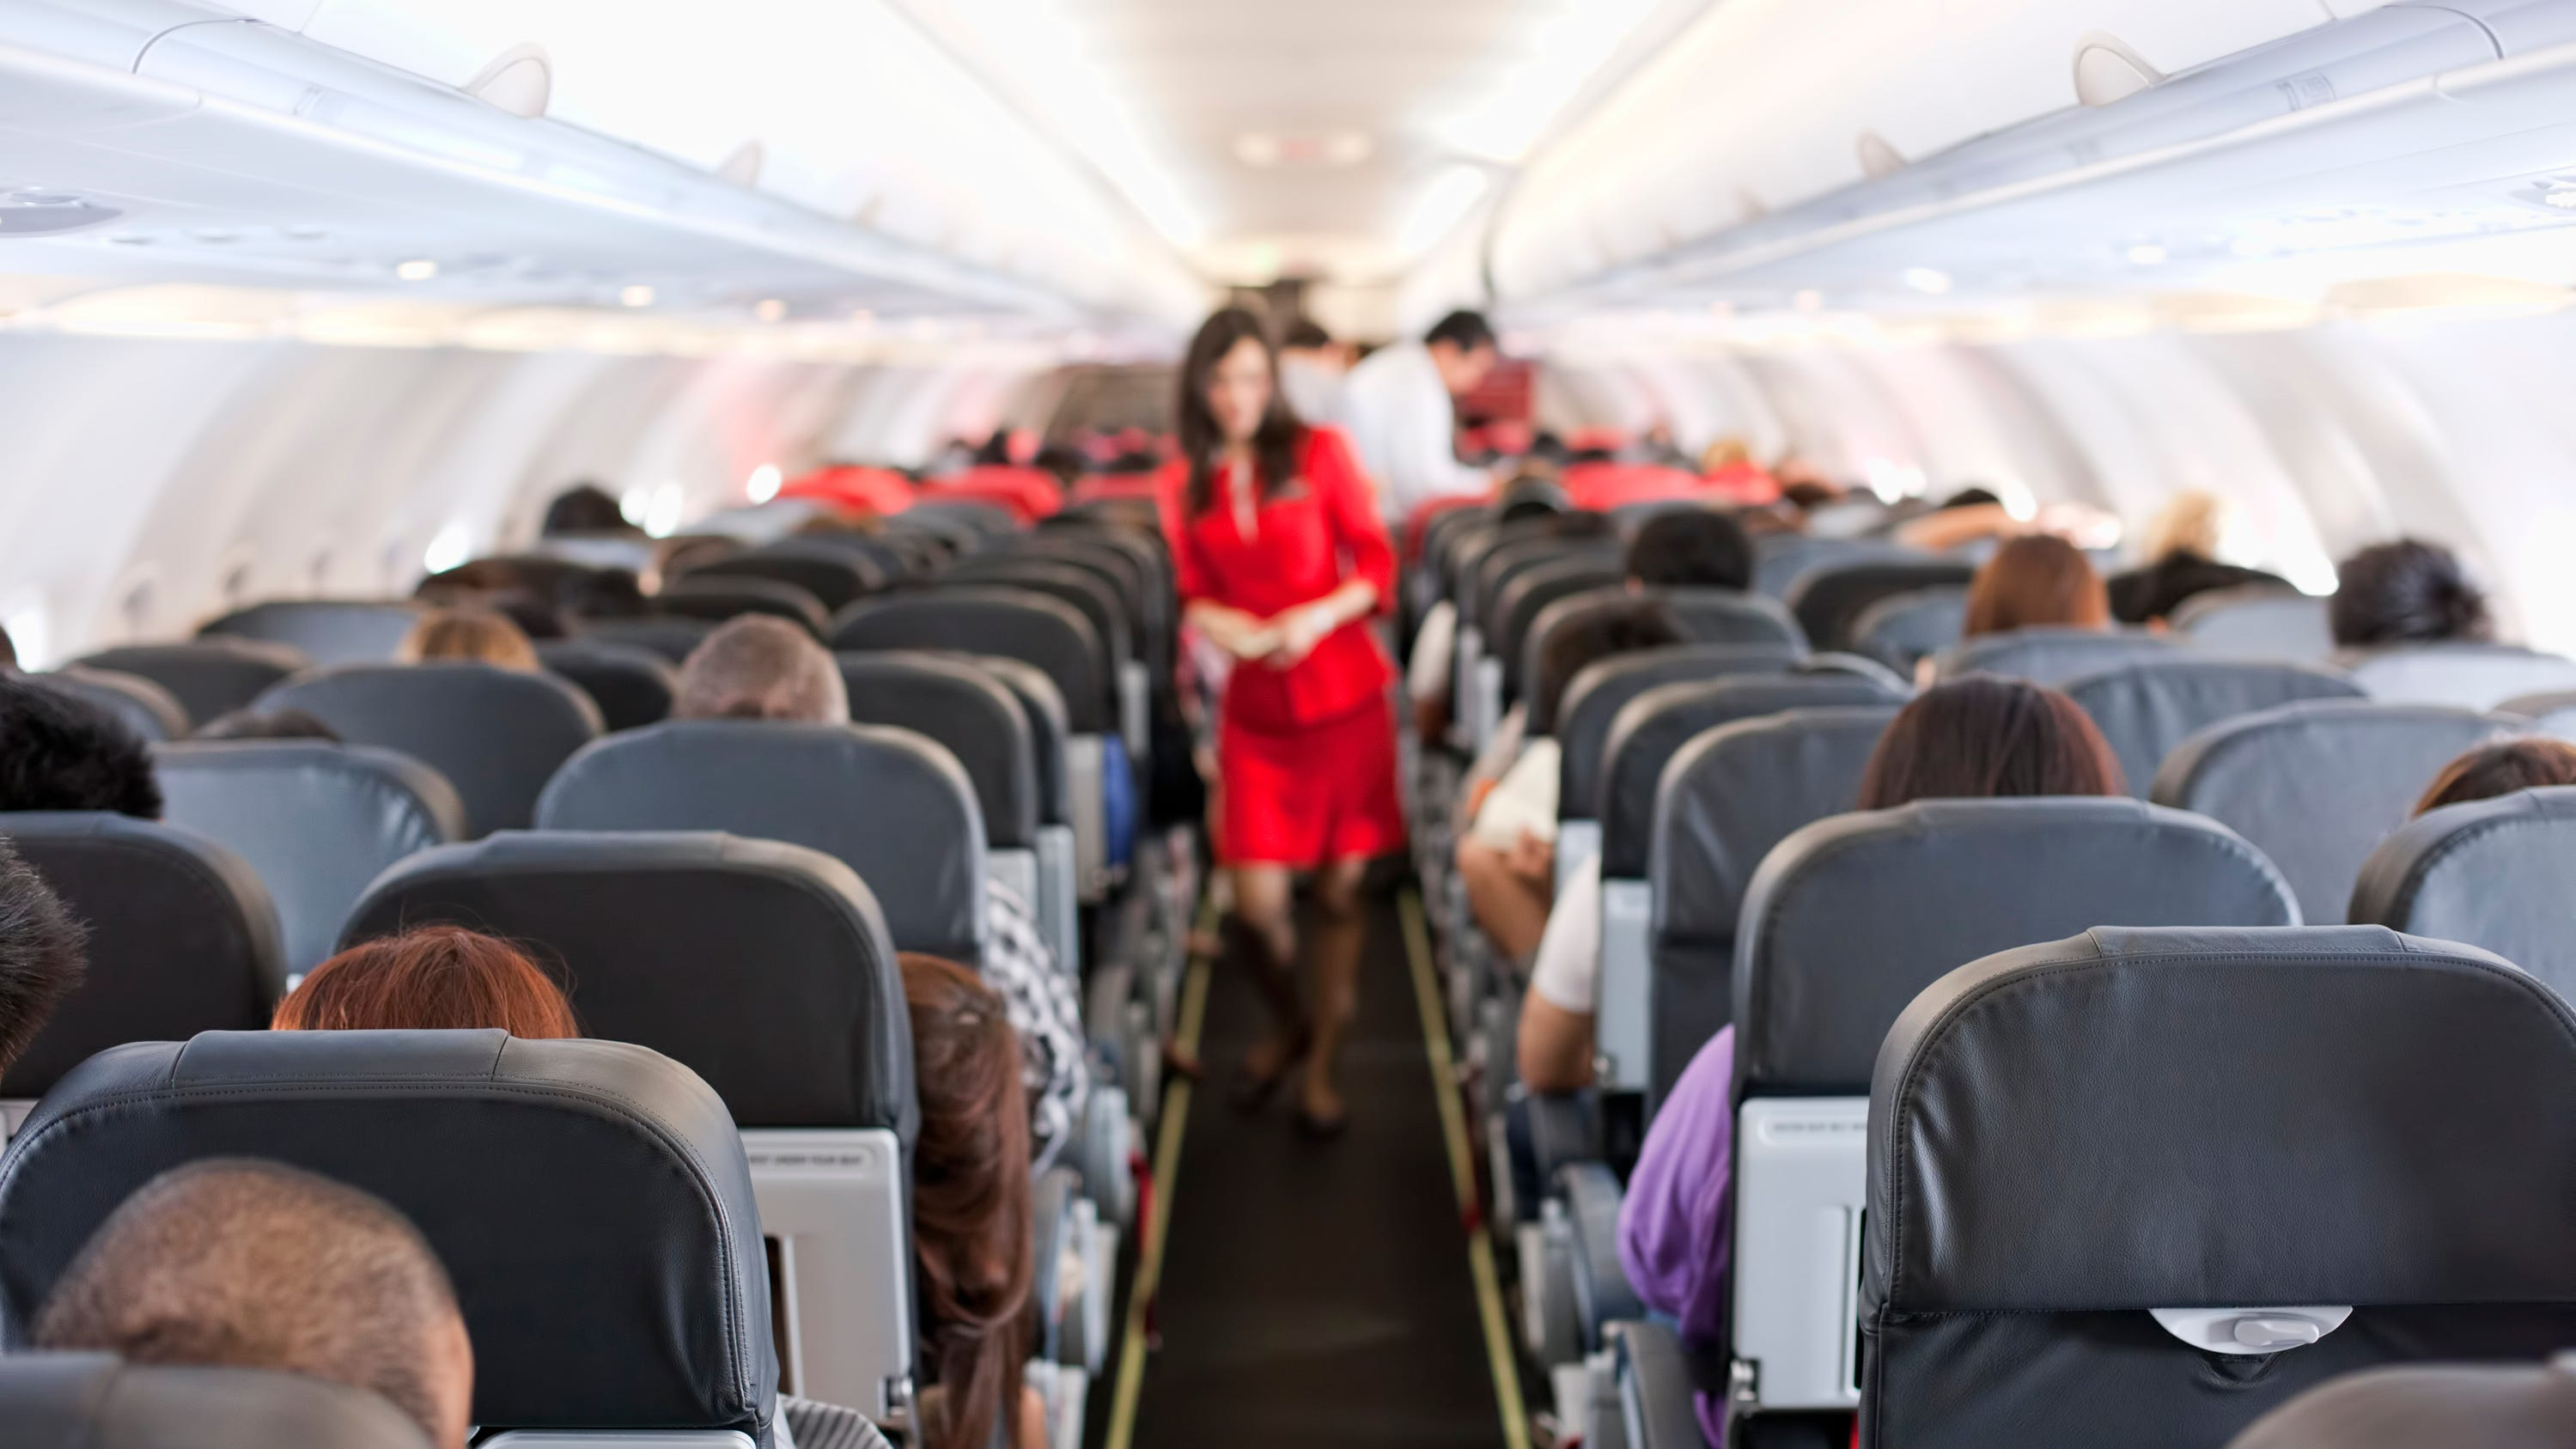 Passengers sometimes take their frustrations out on flight attendants, even though they aren't directly responsible for reductions in airline service.